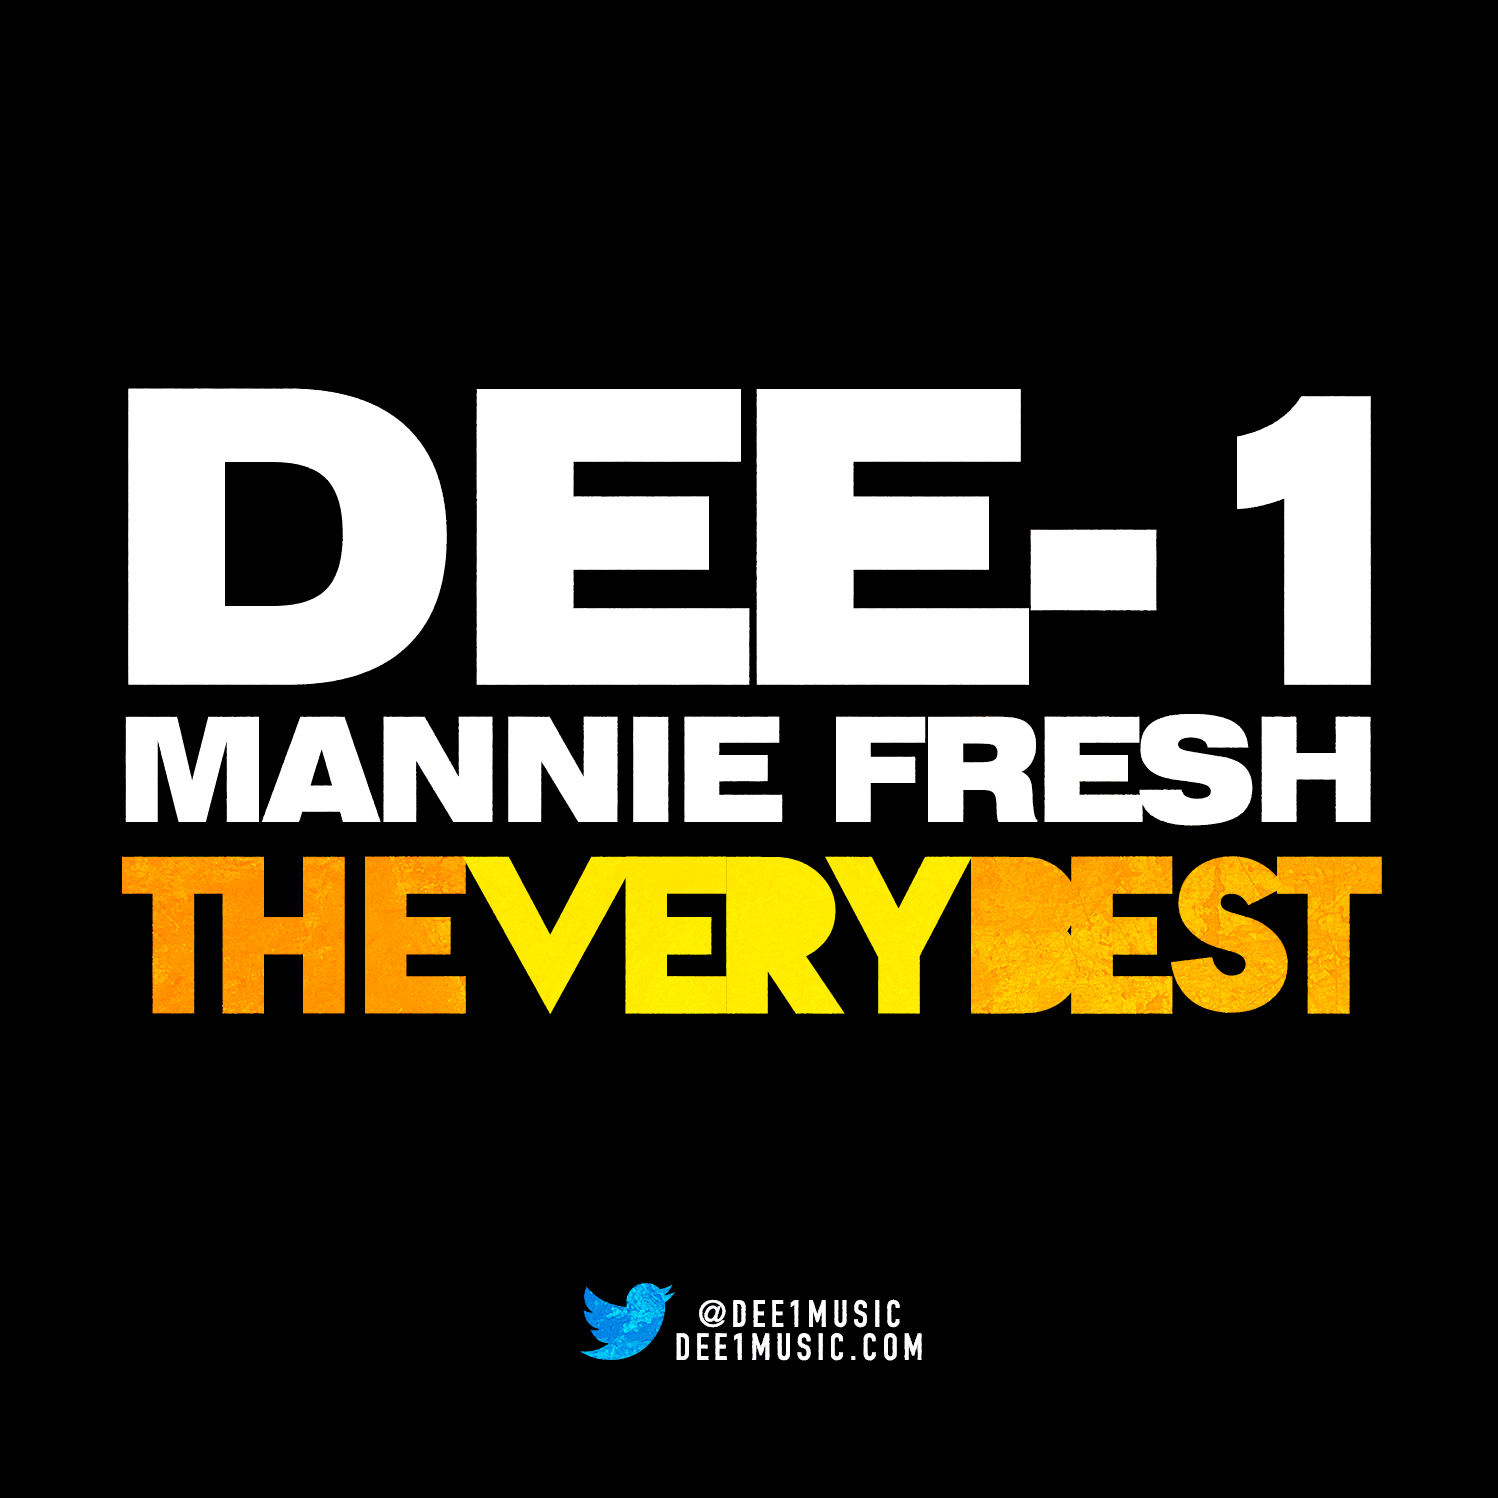 Dee-1 - The Very Best (ft. Mannie Fresh and Yasiin Bey)